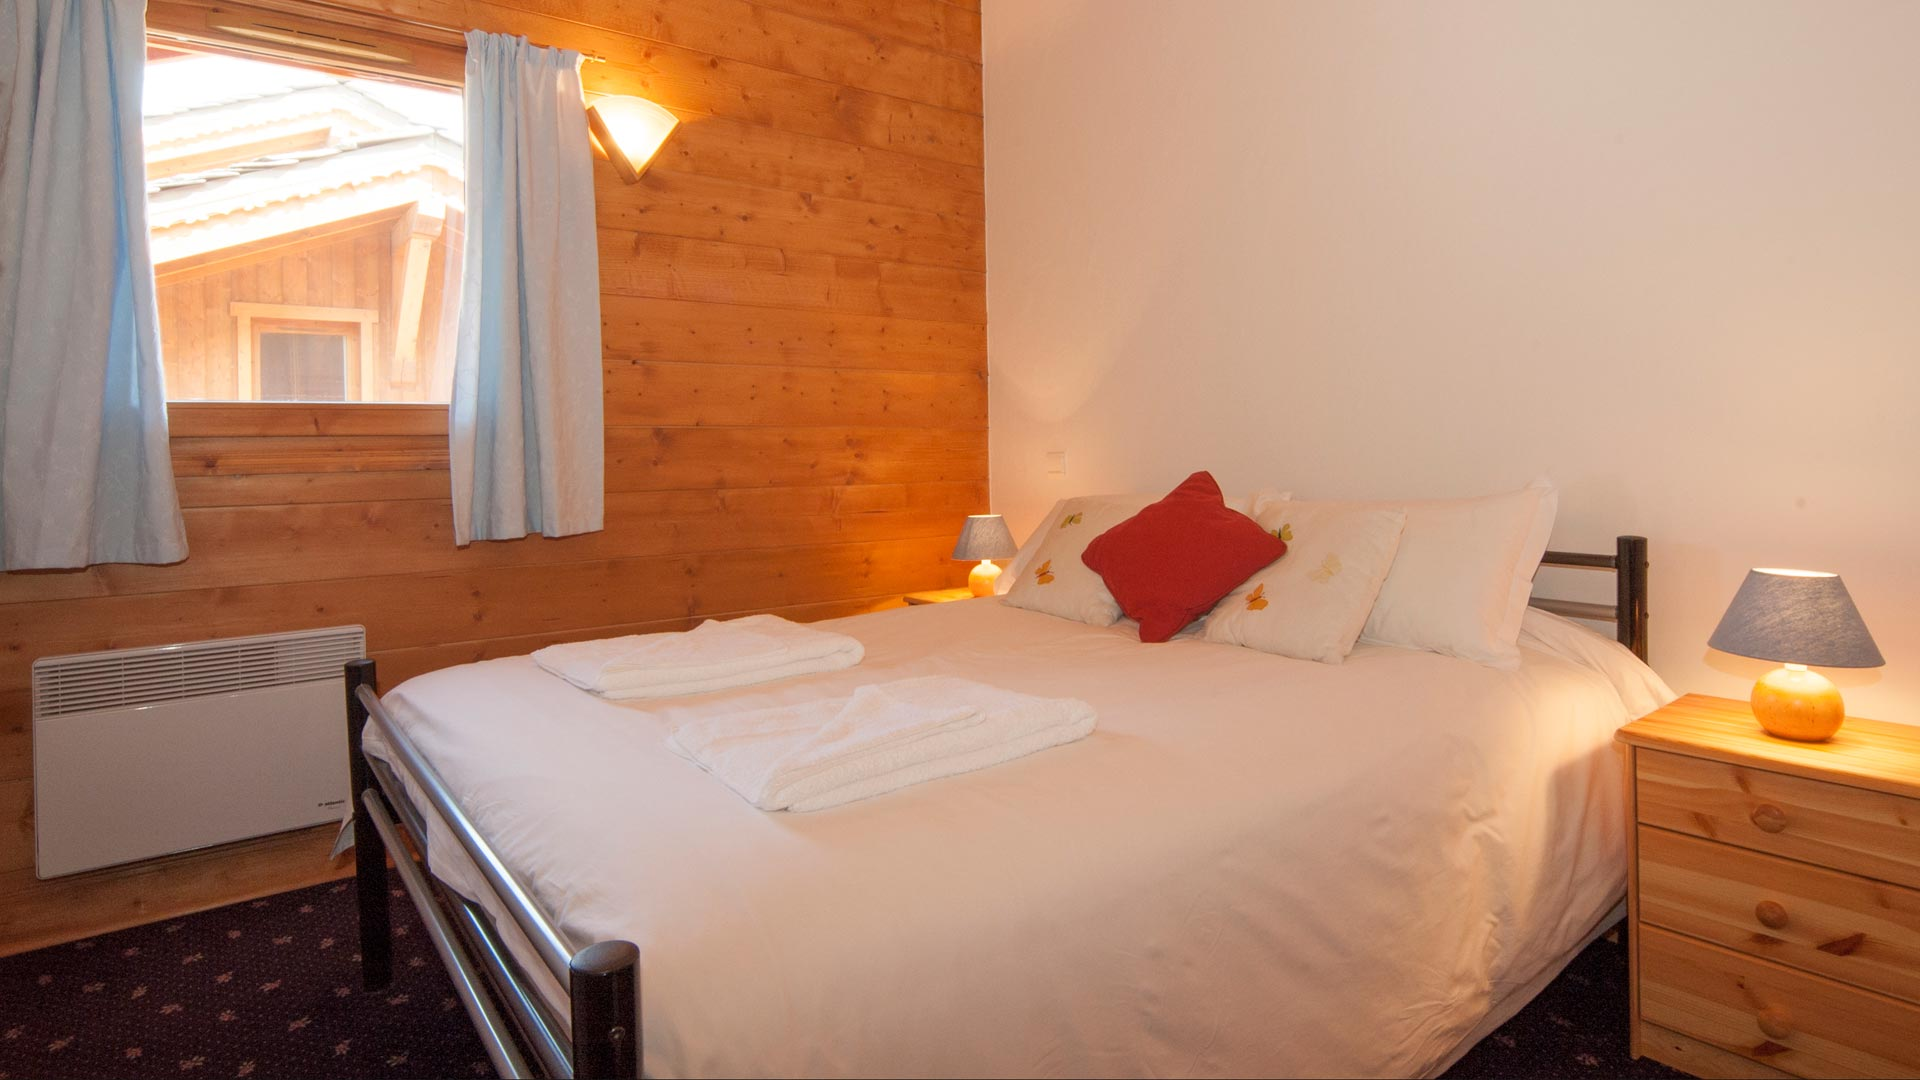 Double Bedroom in Genepi Apartment in Sainte Foy